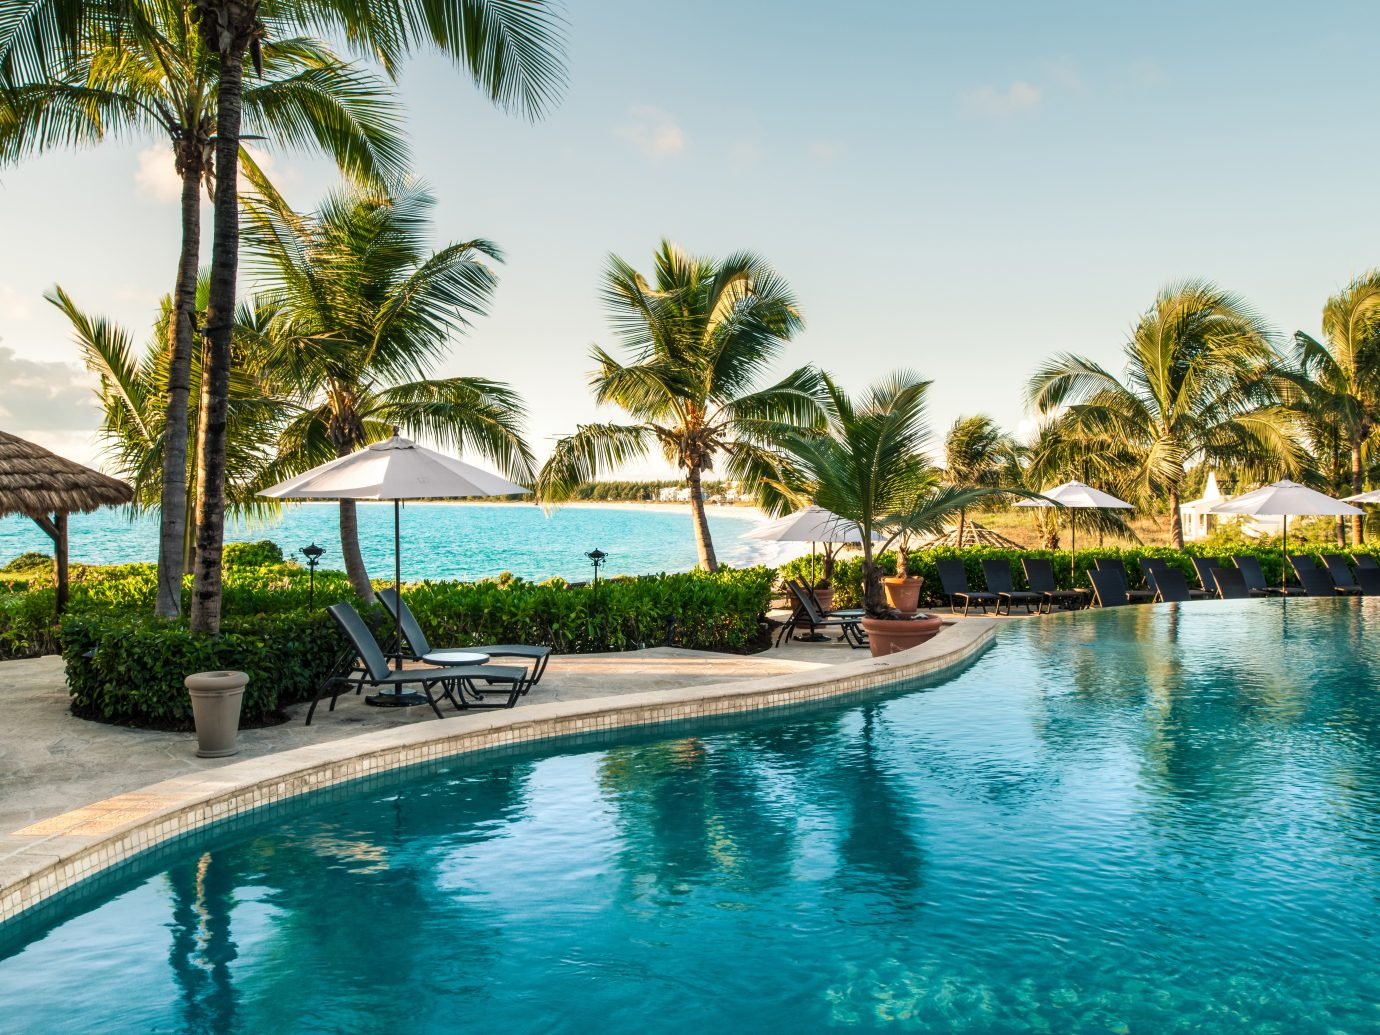 Honeymoon Hotels Pool Resort Romance Wellness outdoor tree water sky palm Beach swimming pool property leisure vacation estate caribbean arecales resort town Lagoon tropics bay Villa Lake lined swimming plant empty sandy surrounded